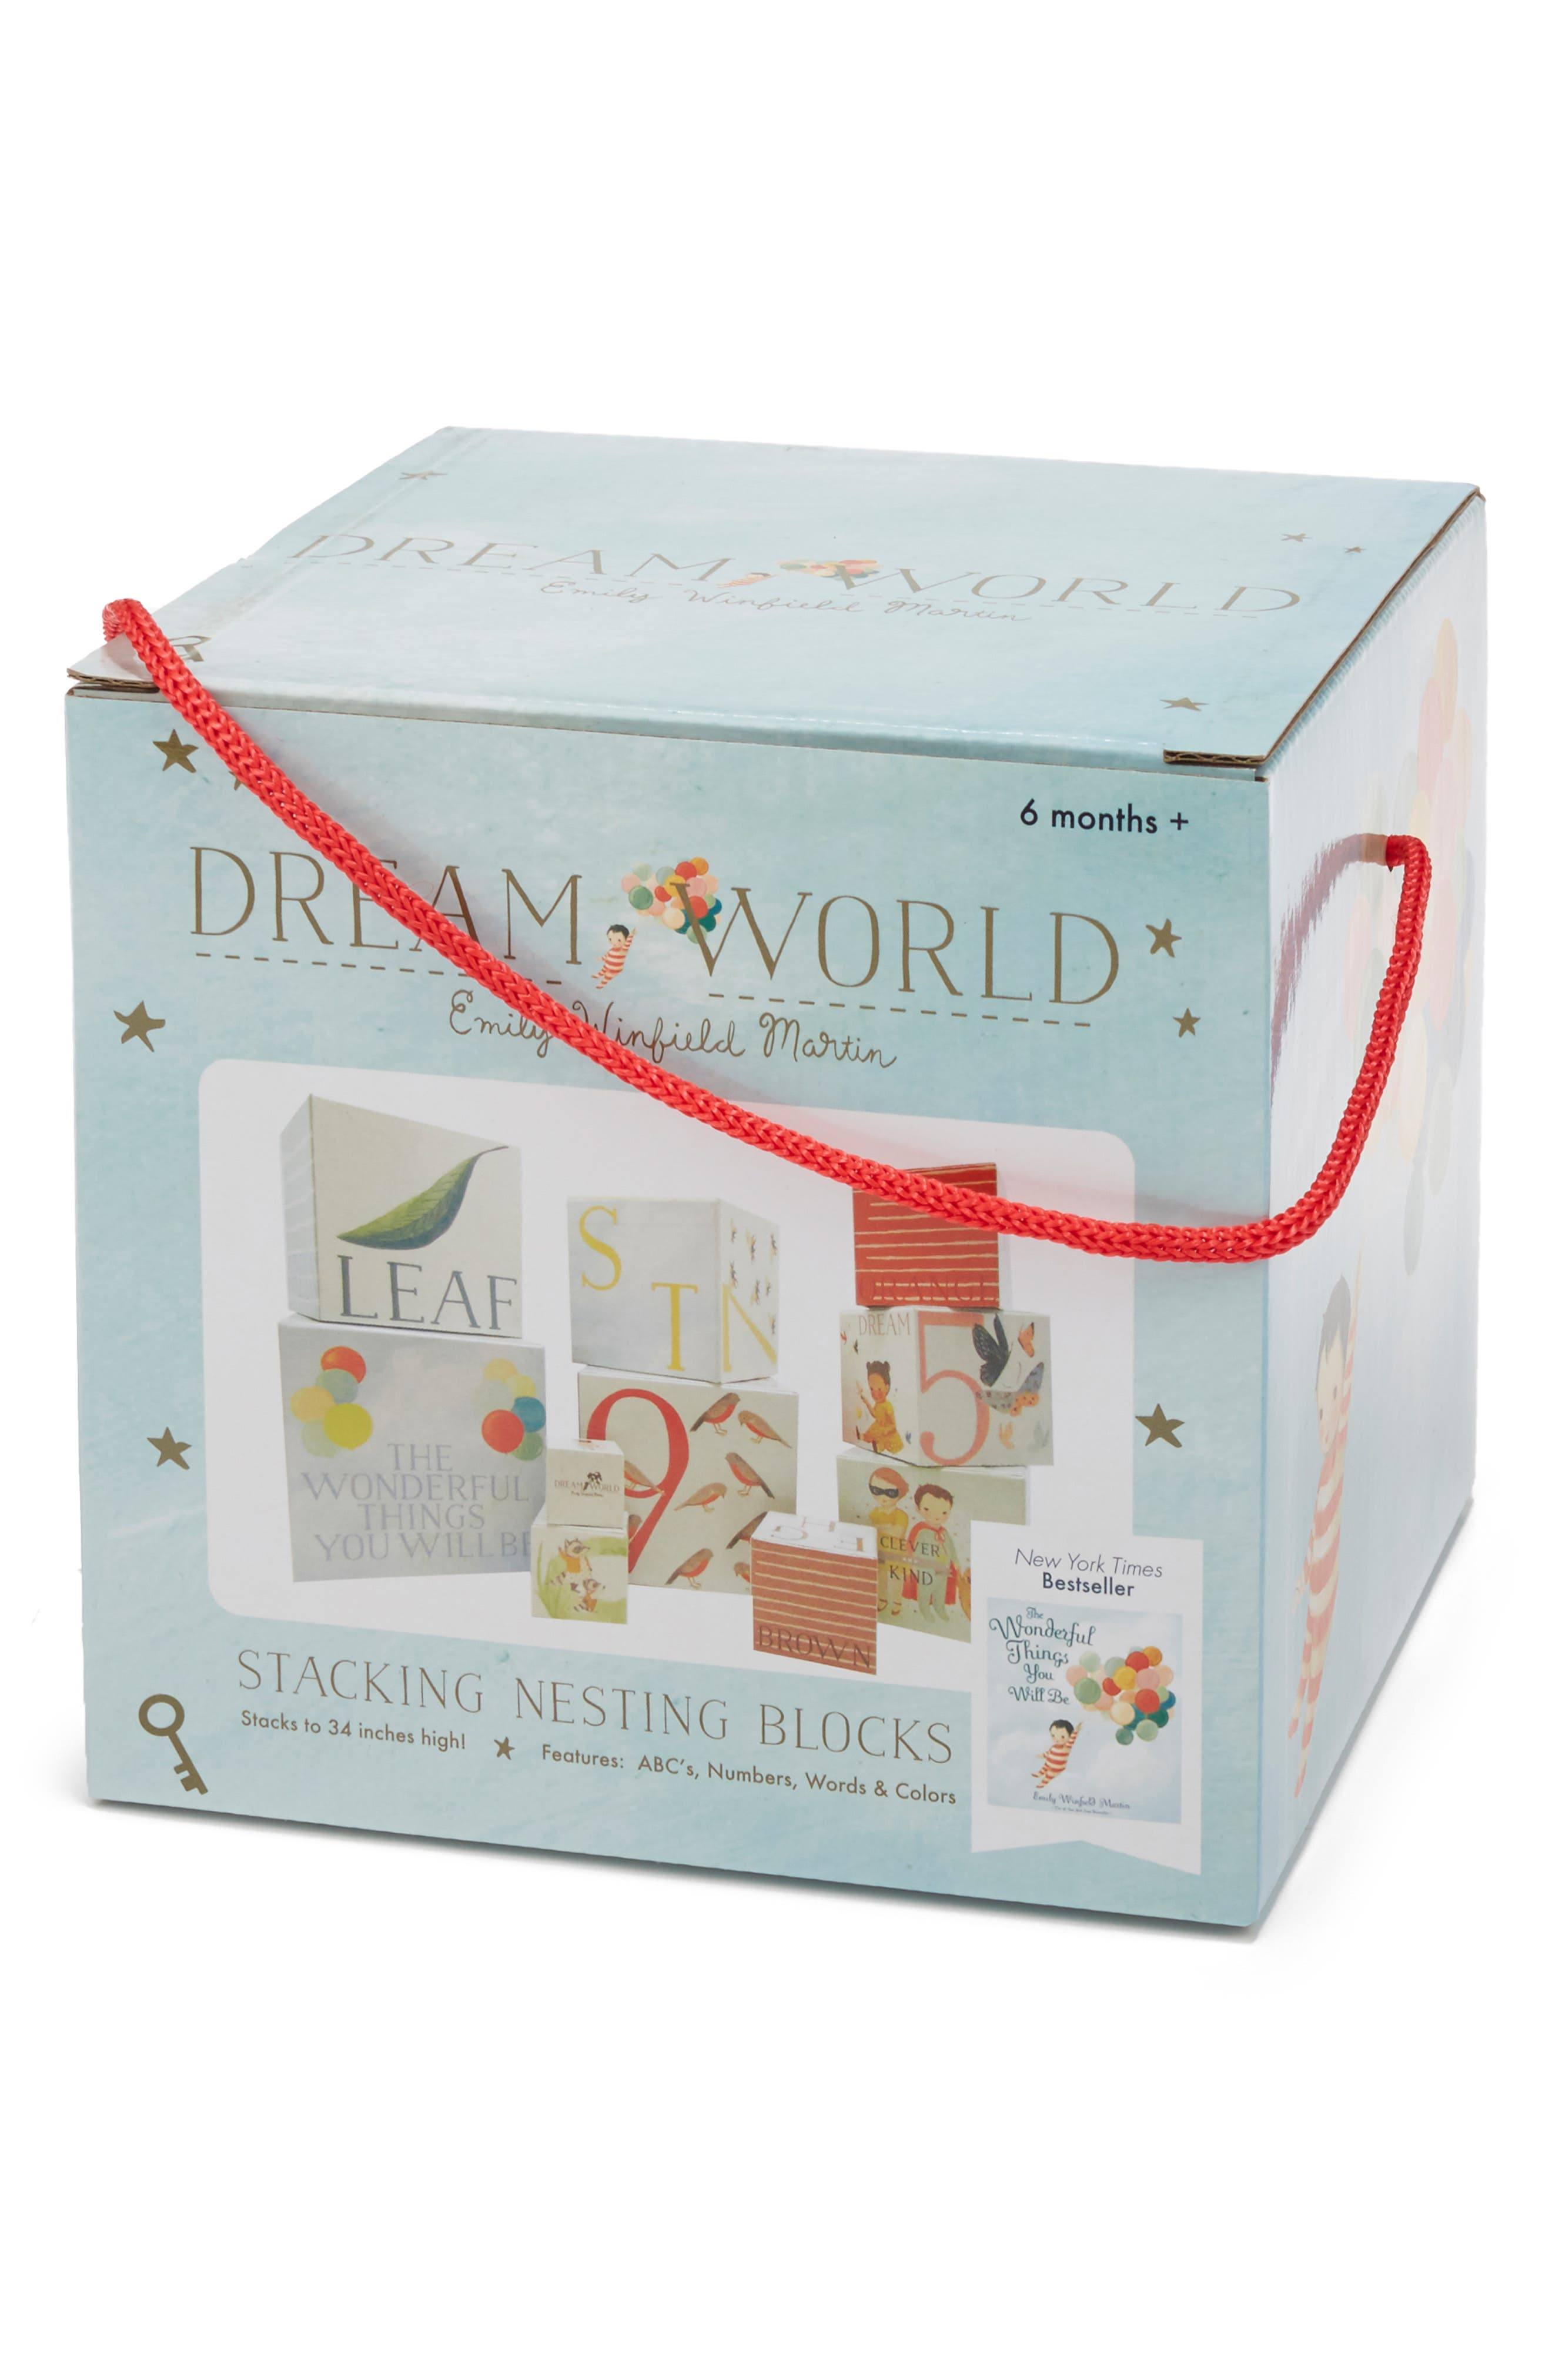 Dreamworld 'The Wonderful Things You Will Be' Stacking Nesting Blocks,                             Main thumbnail 1, color,                             CREAM